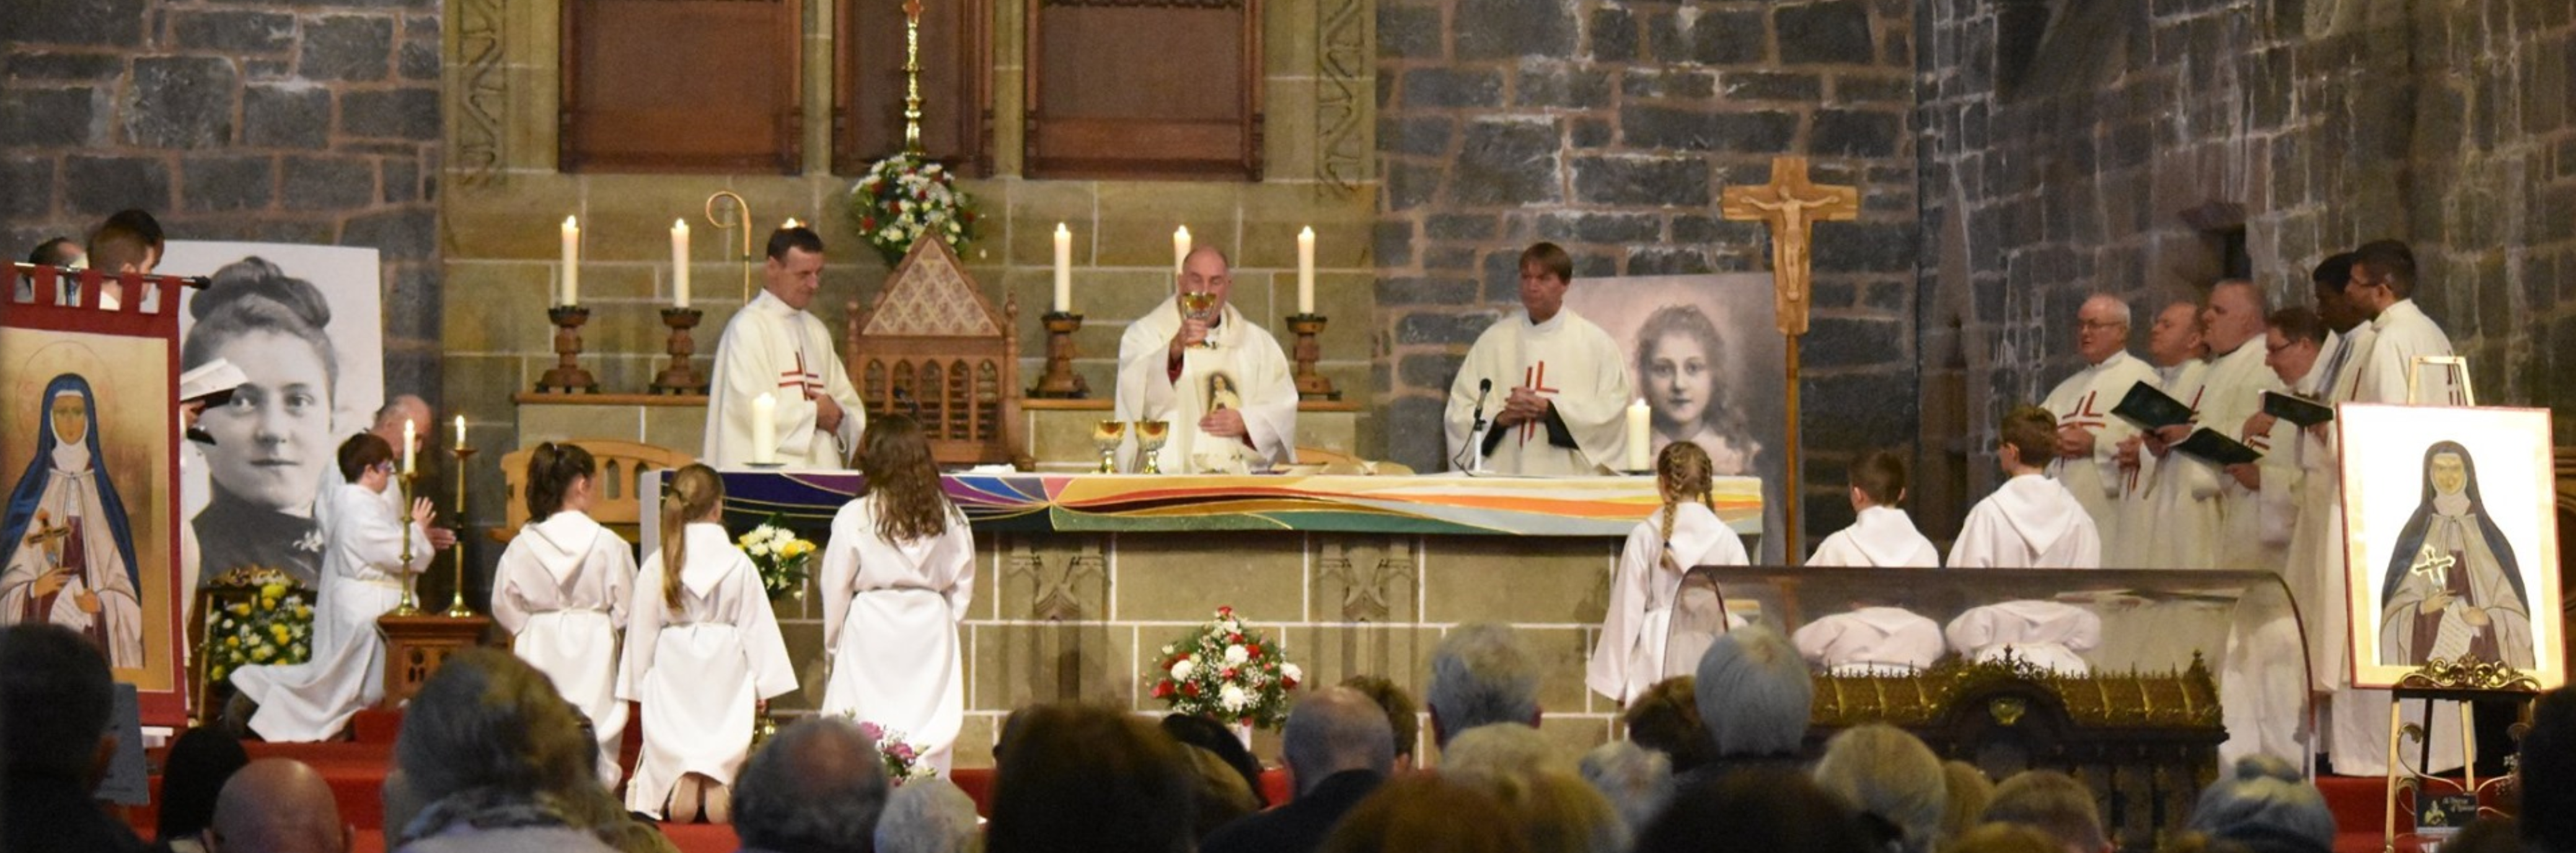 Visit of the Relics of St Thérèse